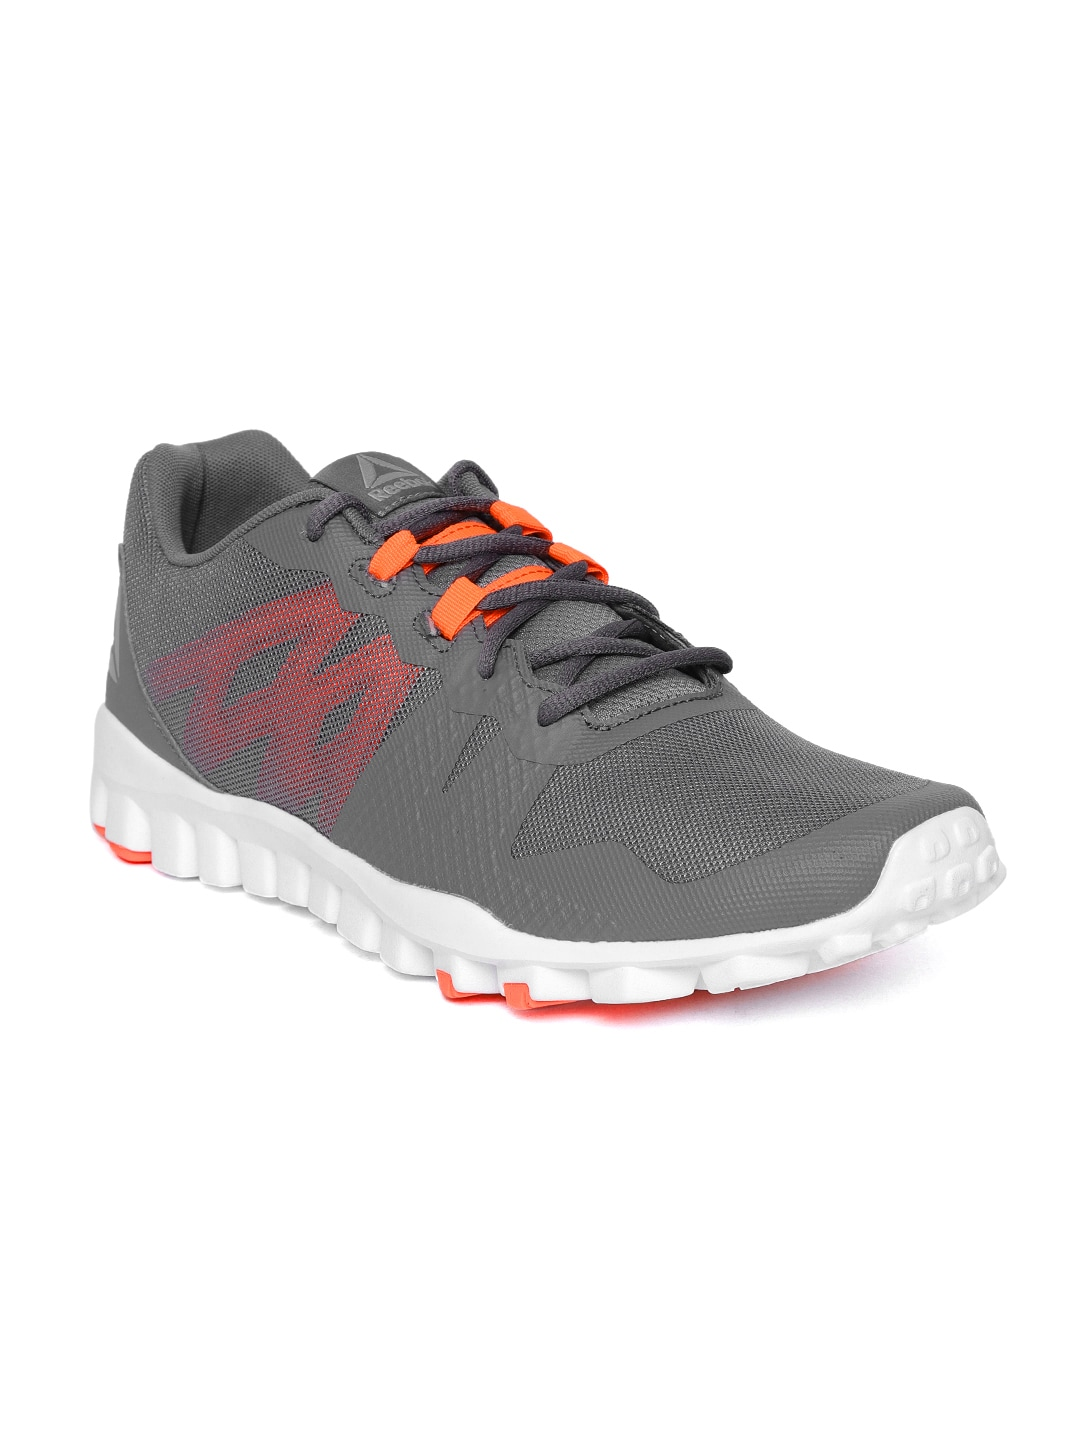 Reebok Shoes - Buy Reebok Shoes For Men   Women Online 951ba253b